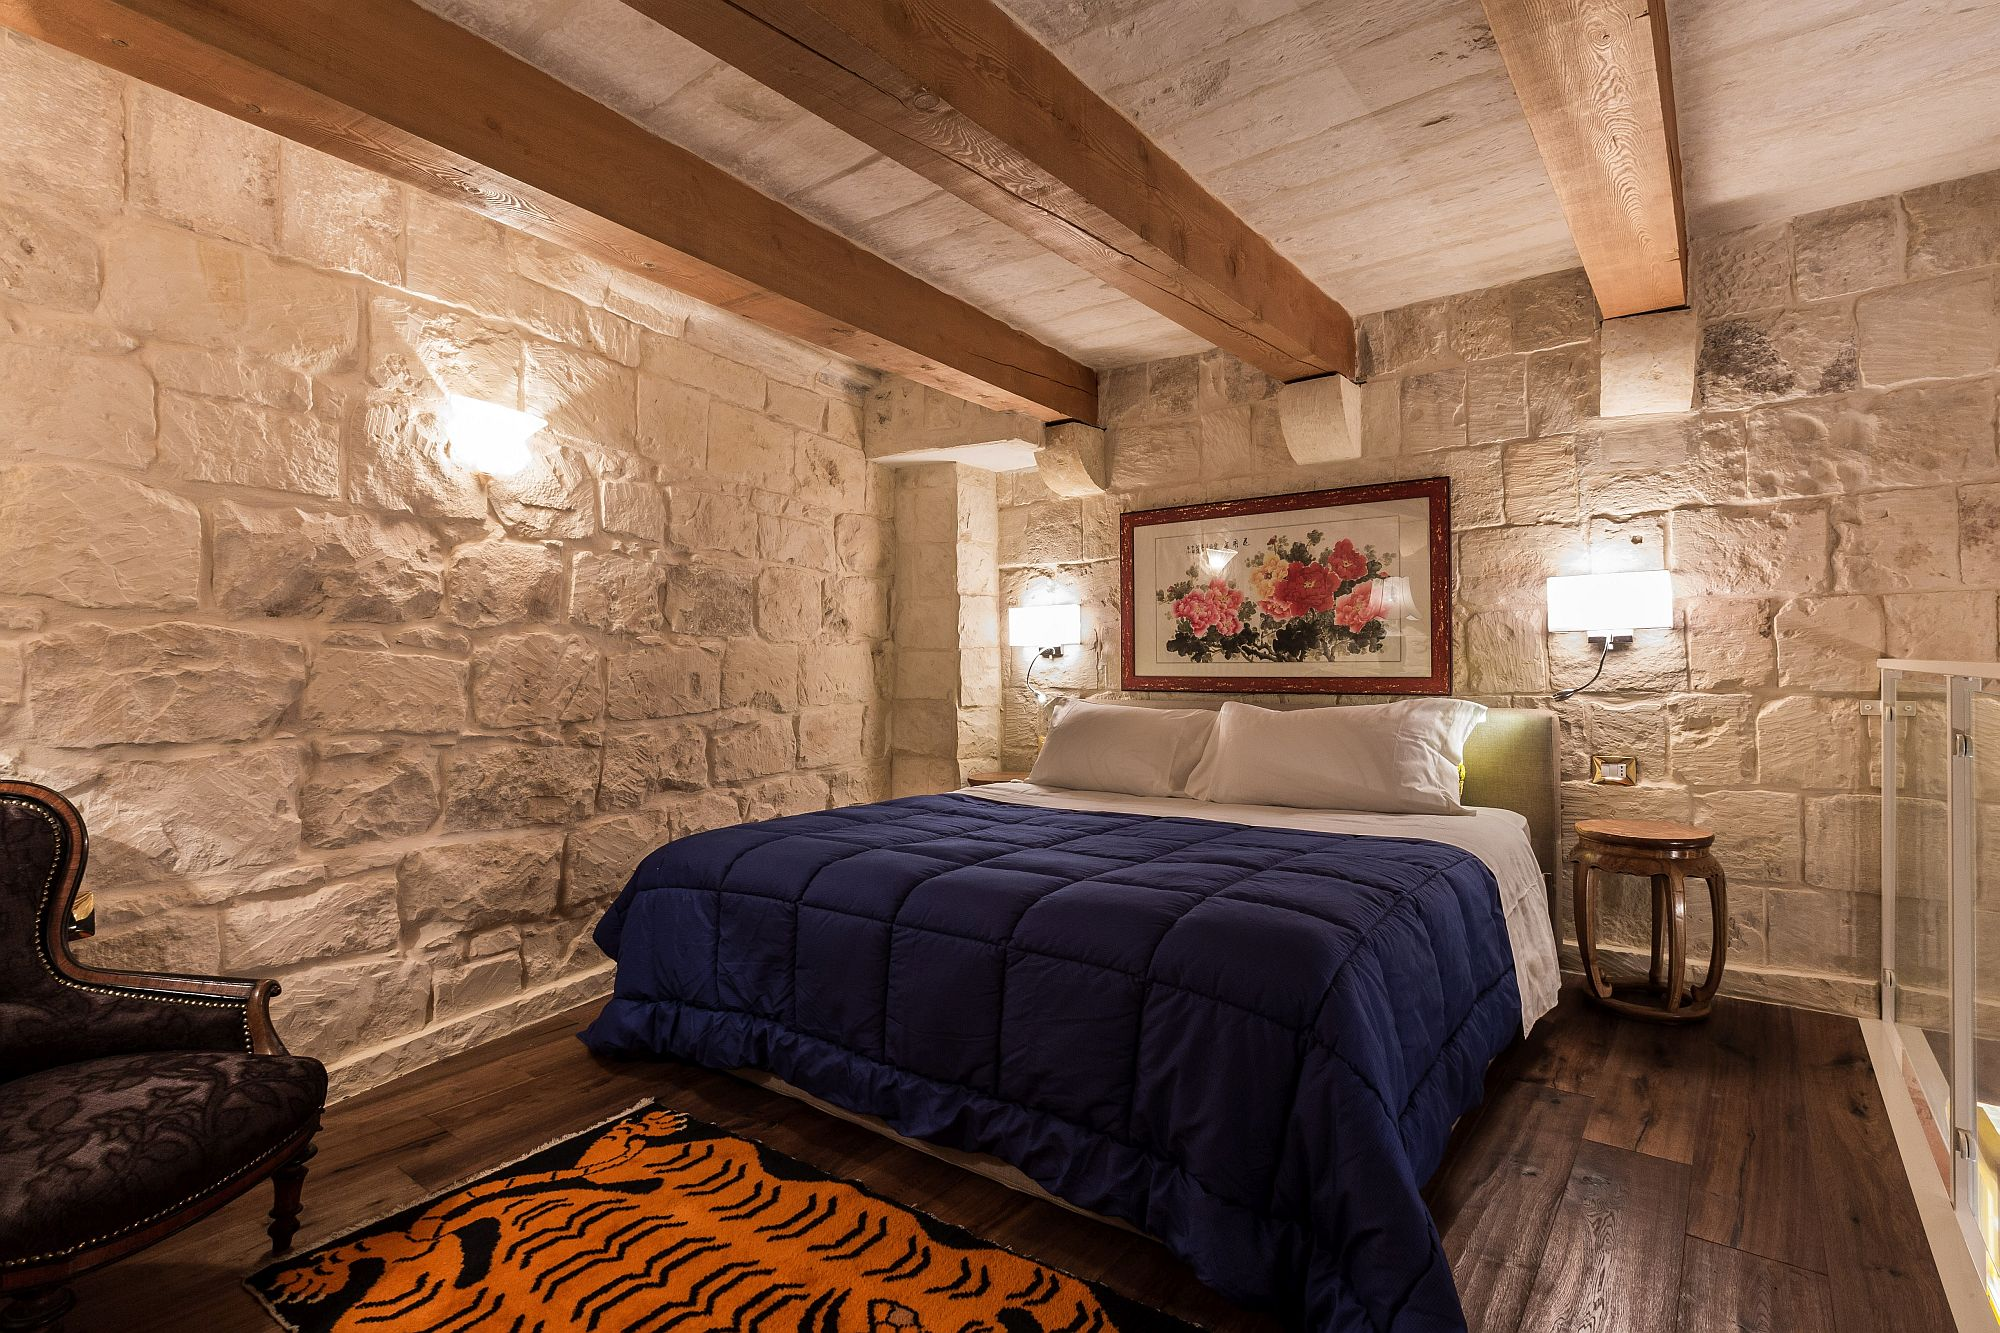 Private alcove with a comfy bed at the 50 square meter suite inside Locanda La Gelsomina